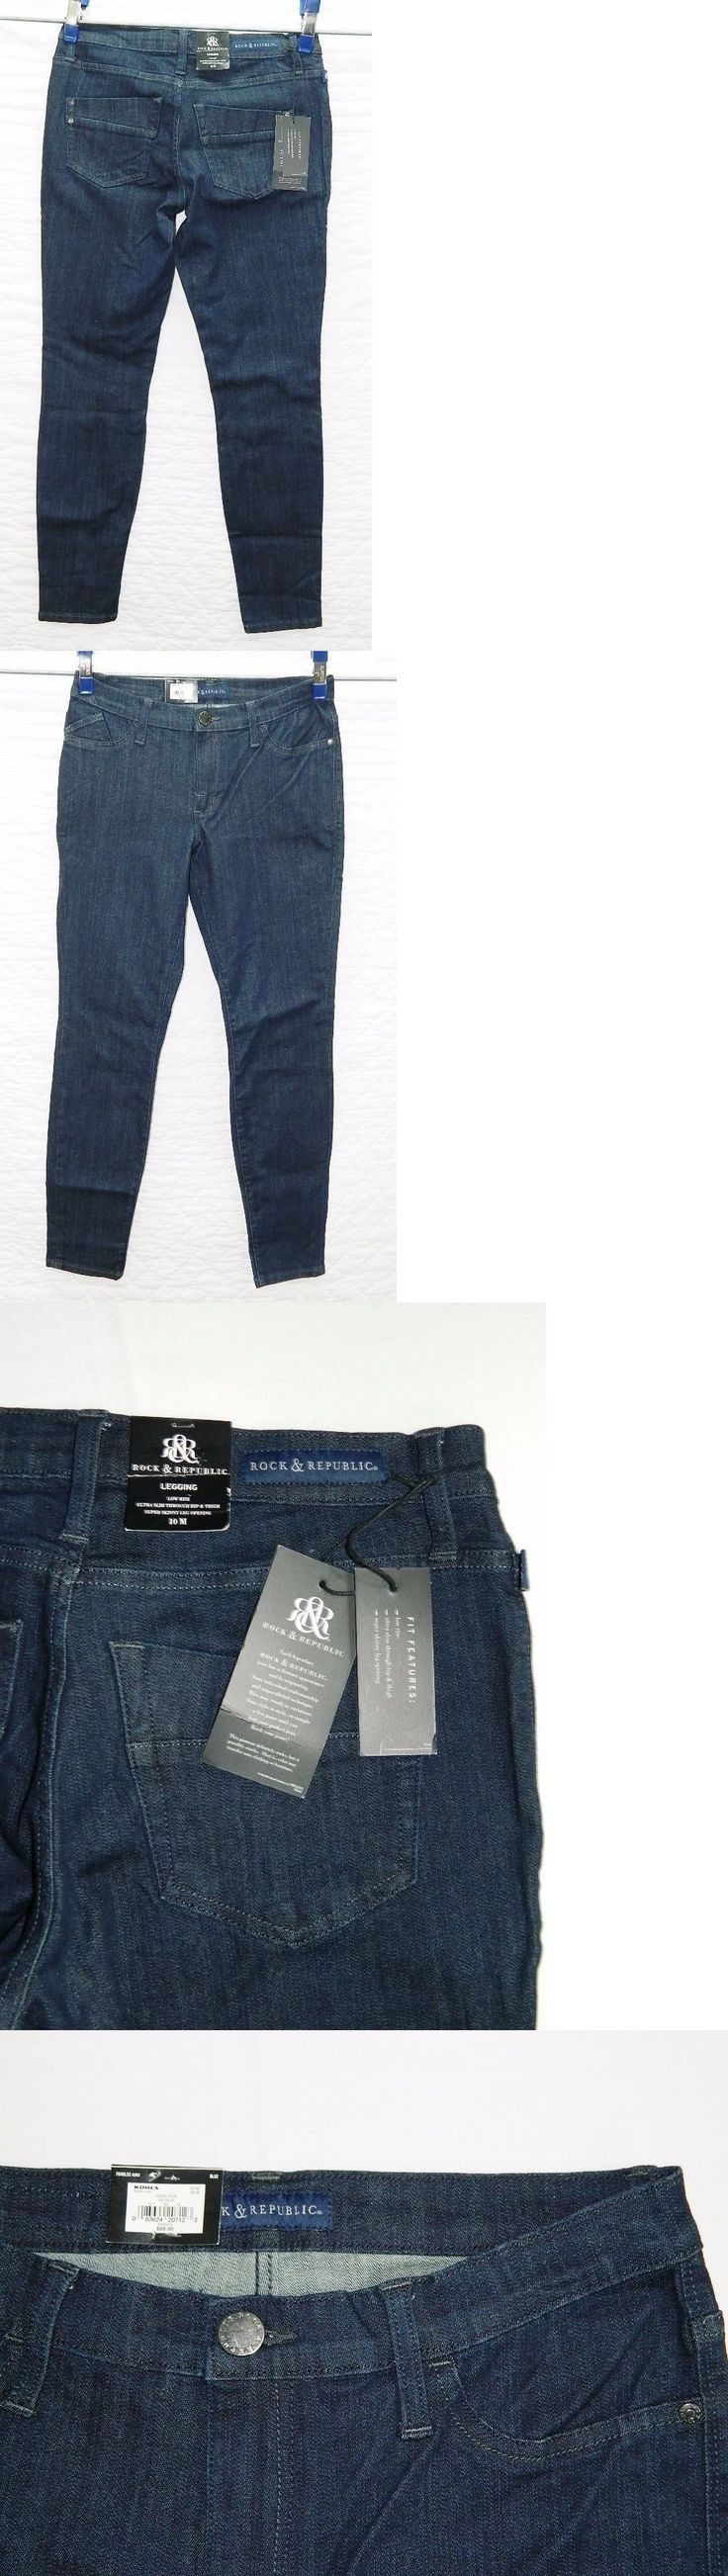 Jeans 11554: New Women S Rock And Republic Kashmiere Dark Blue Legging Jeans Stretch Low Rise -> BUY IT NOW ONLY: $37.8 on eBay!